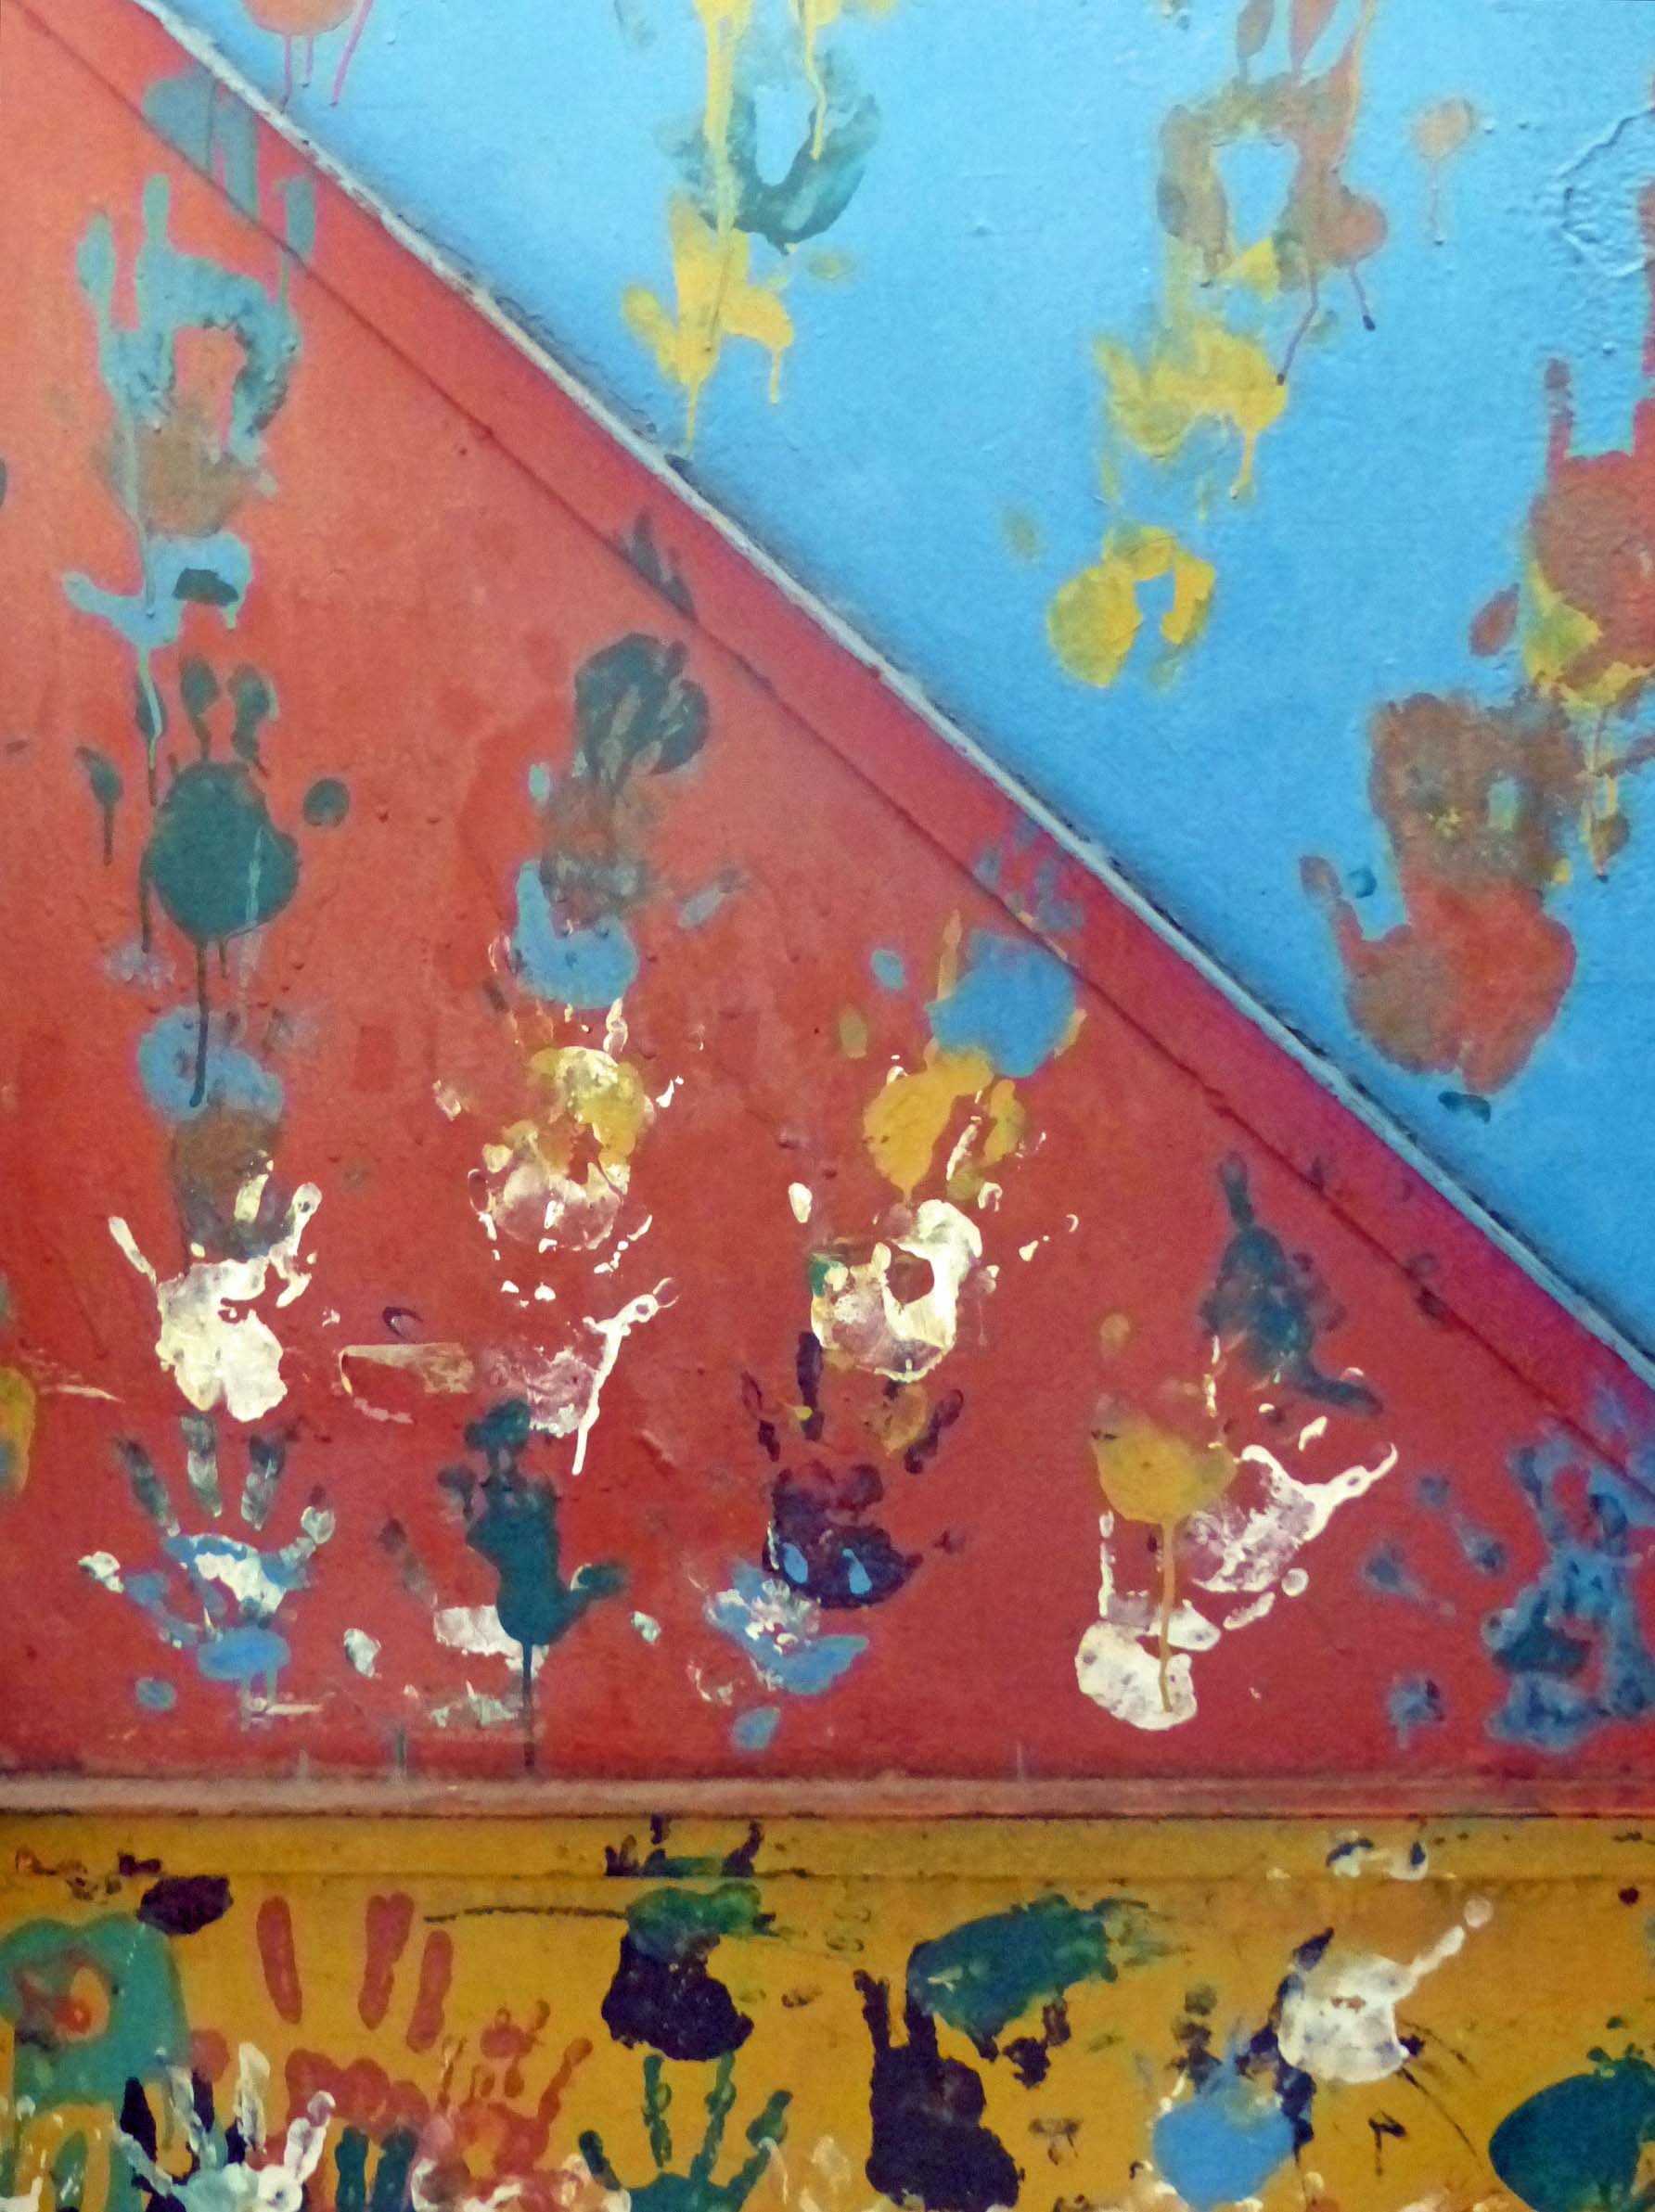 Paint handprints on a colourful wall